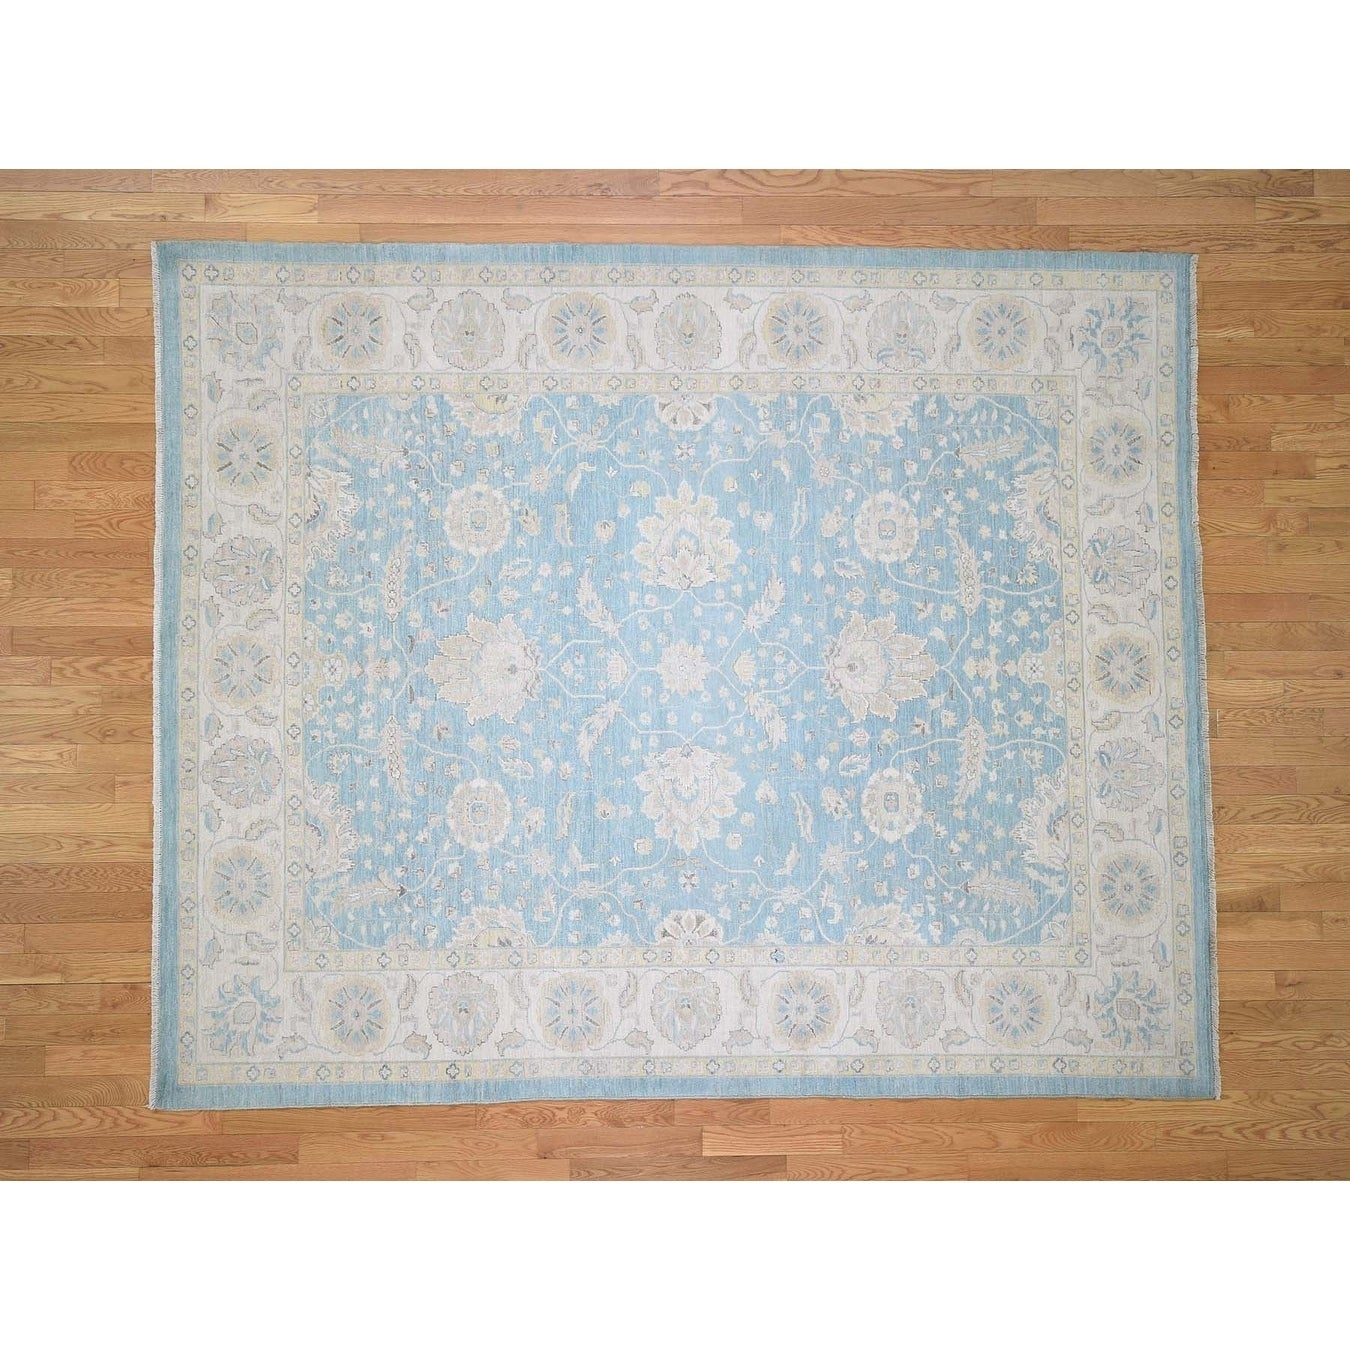 Hand Knotted Blue Oushak And Peshawar with Wool Oriental Rug - 8 x 99